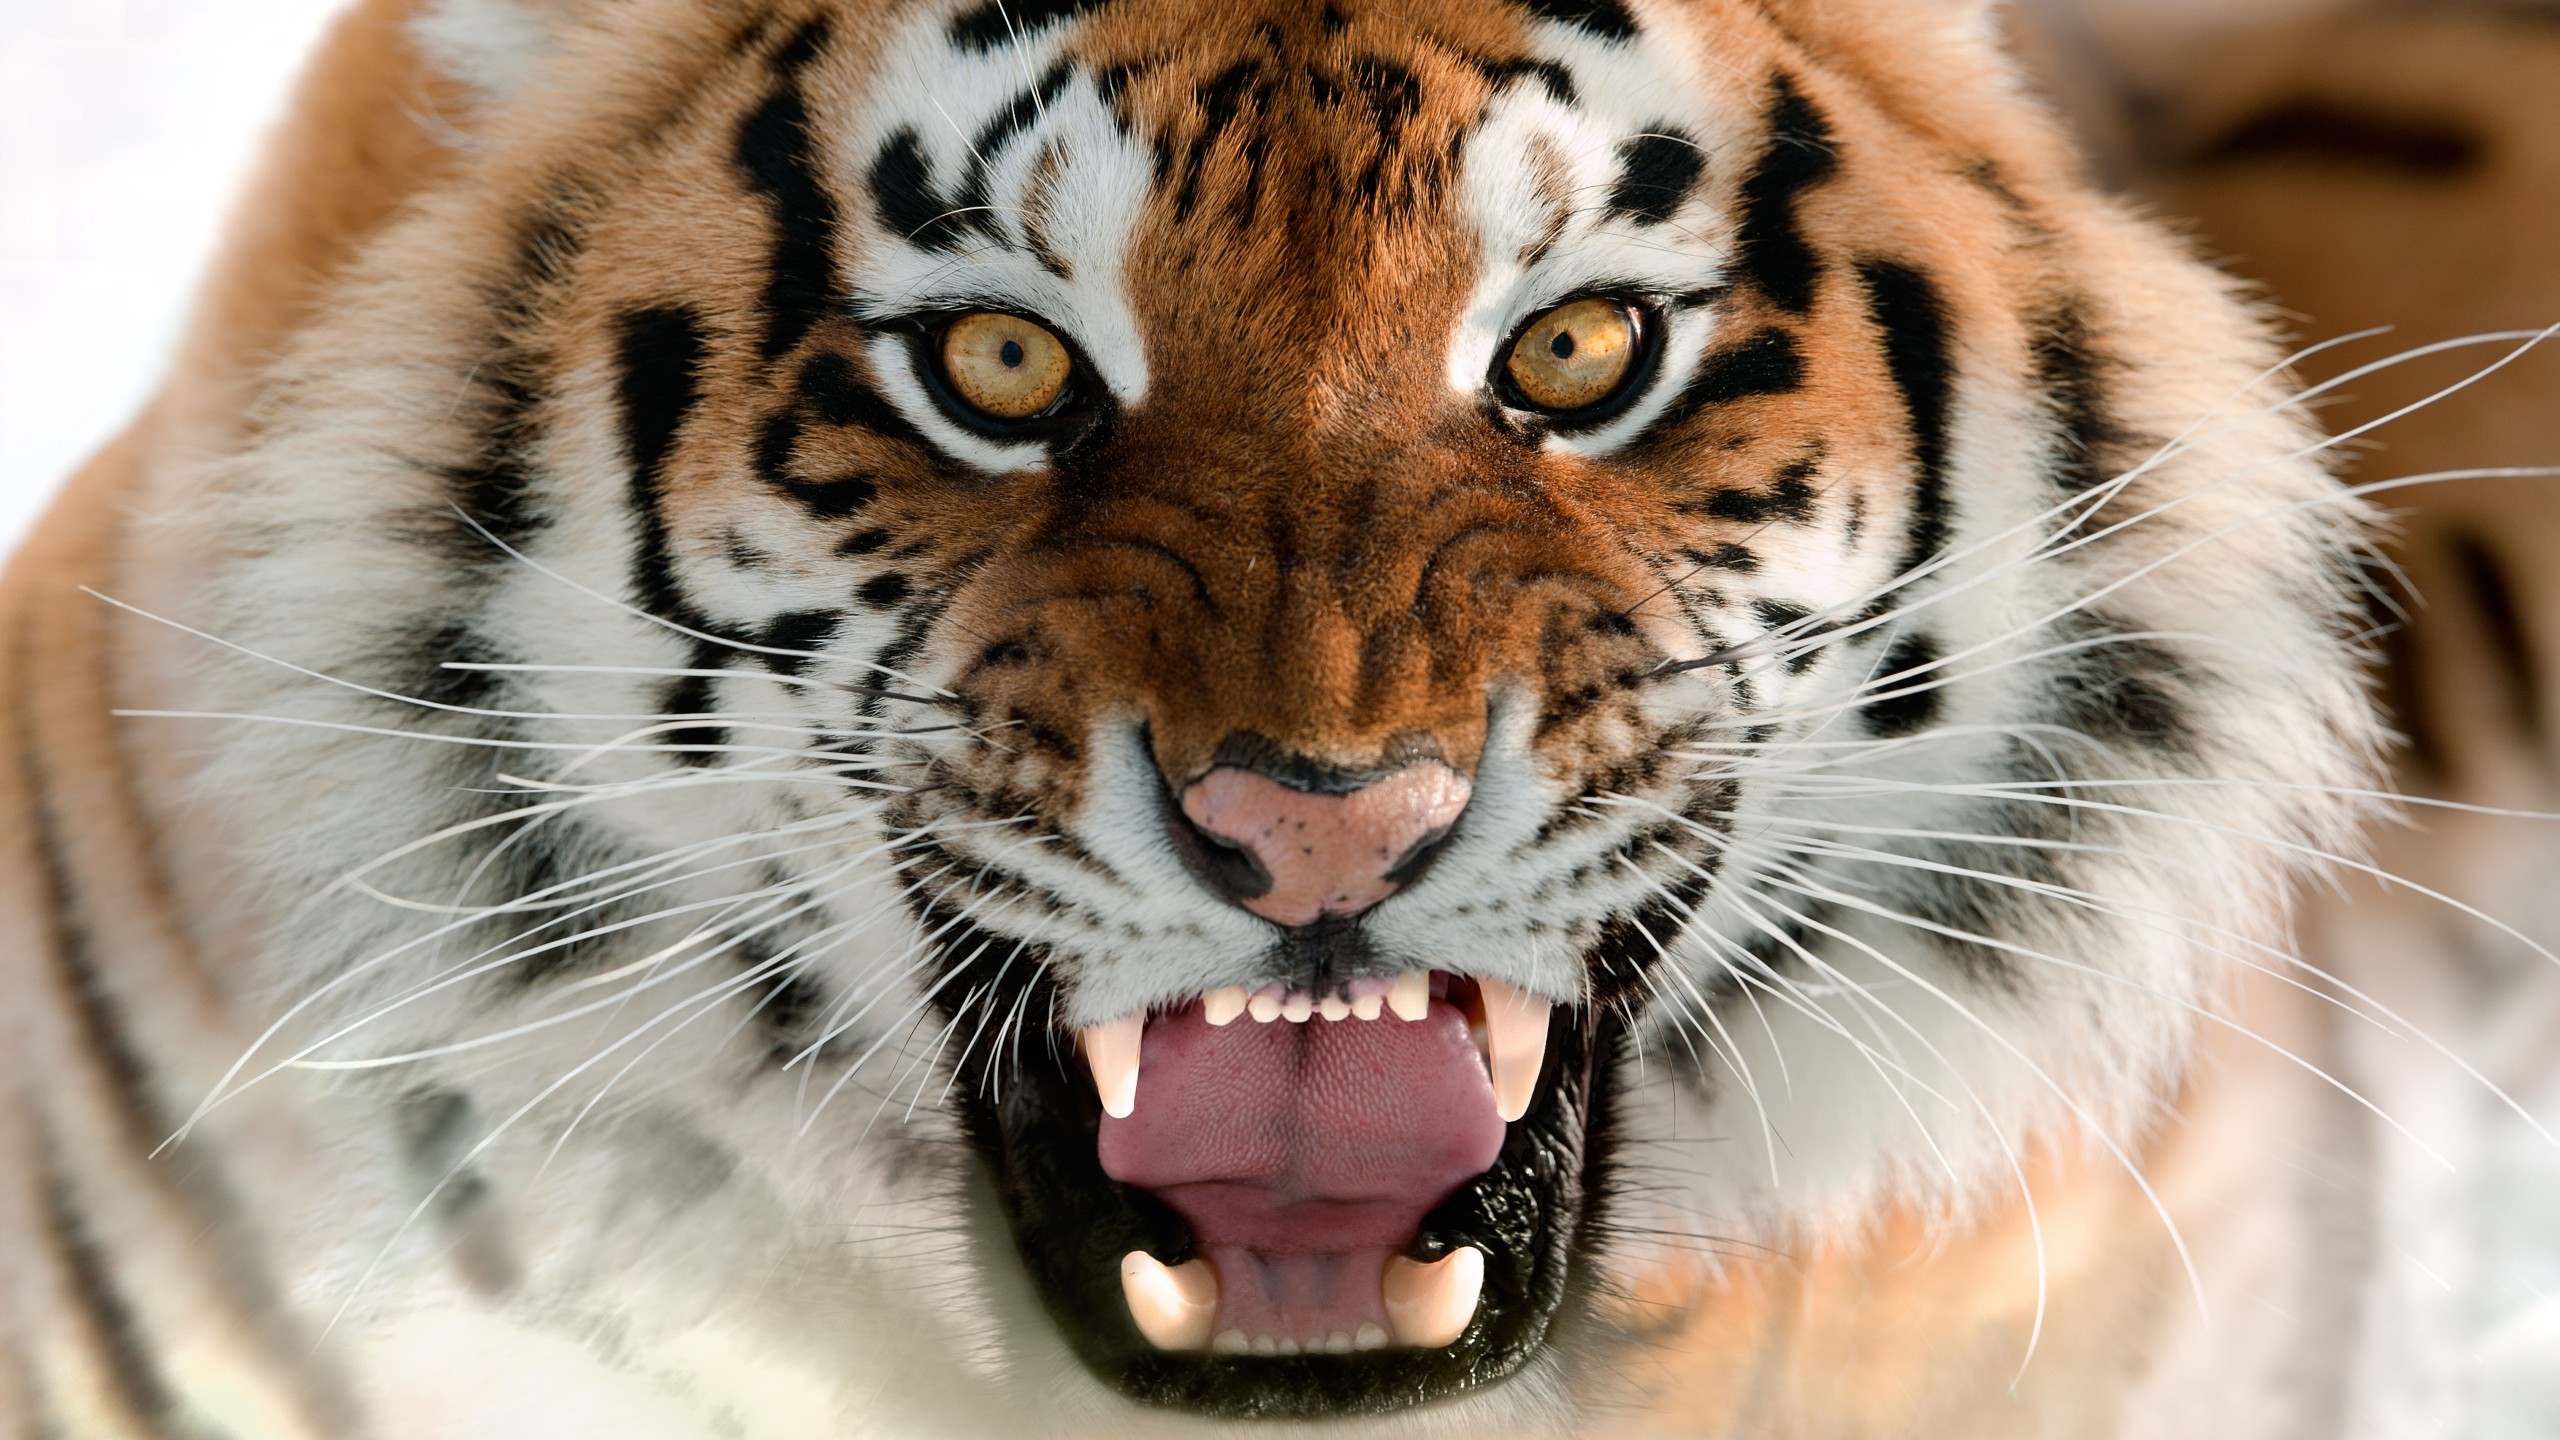 Cool Cute Girly Wallpapers Wallpaper Tiger Muzzle Grin Amur Tiger Portrait